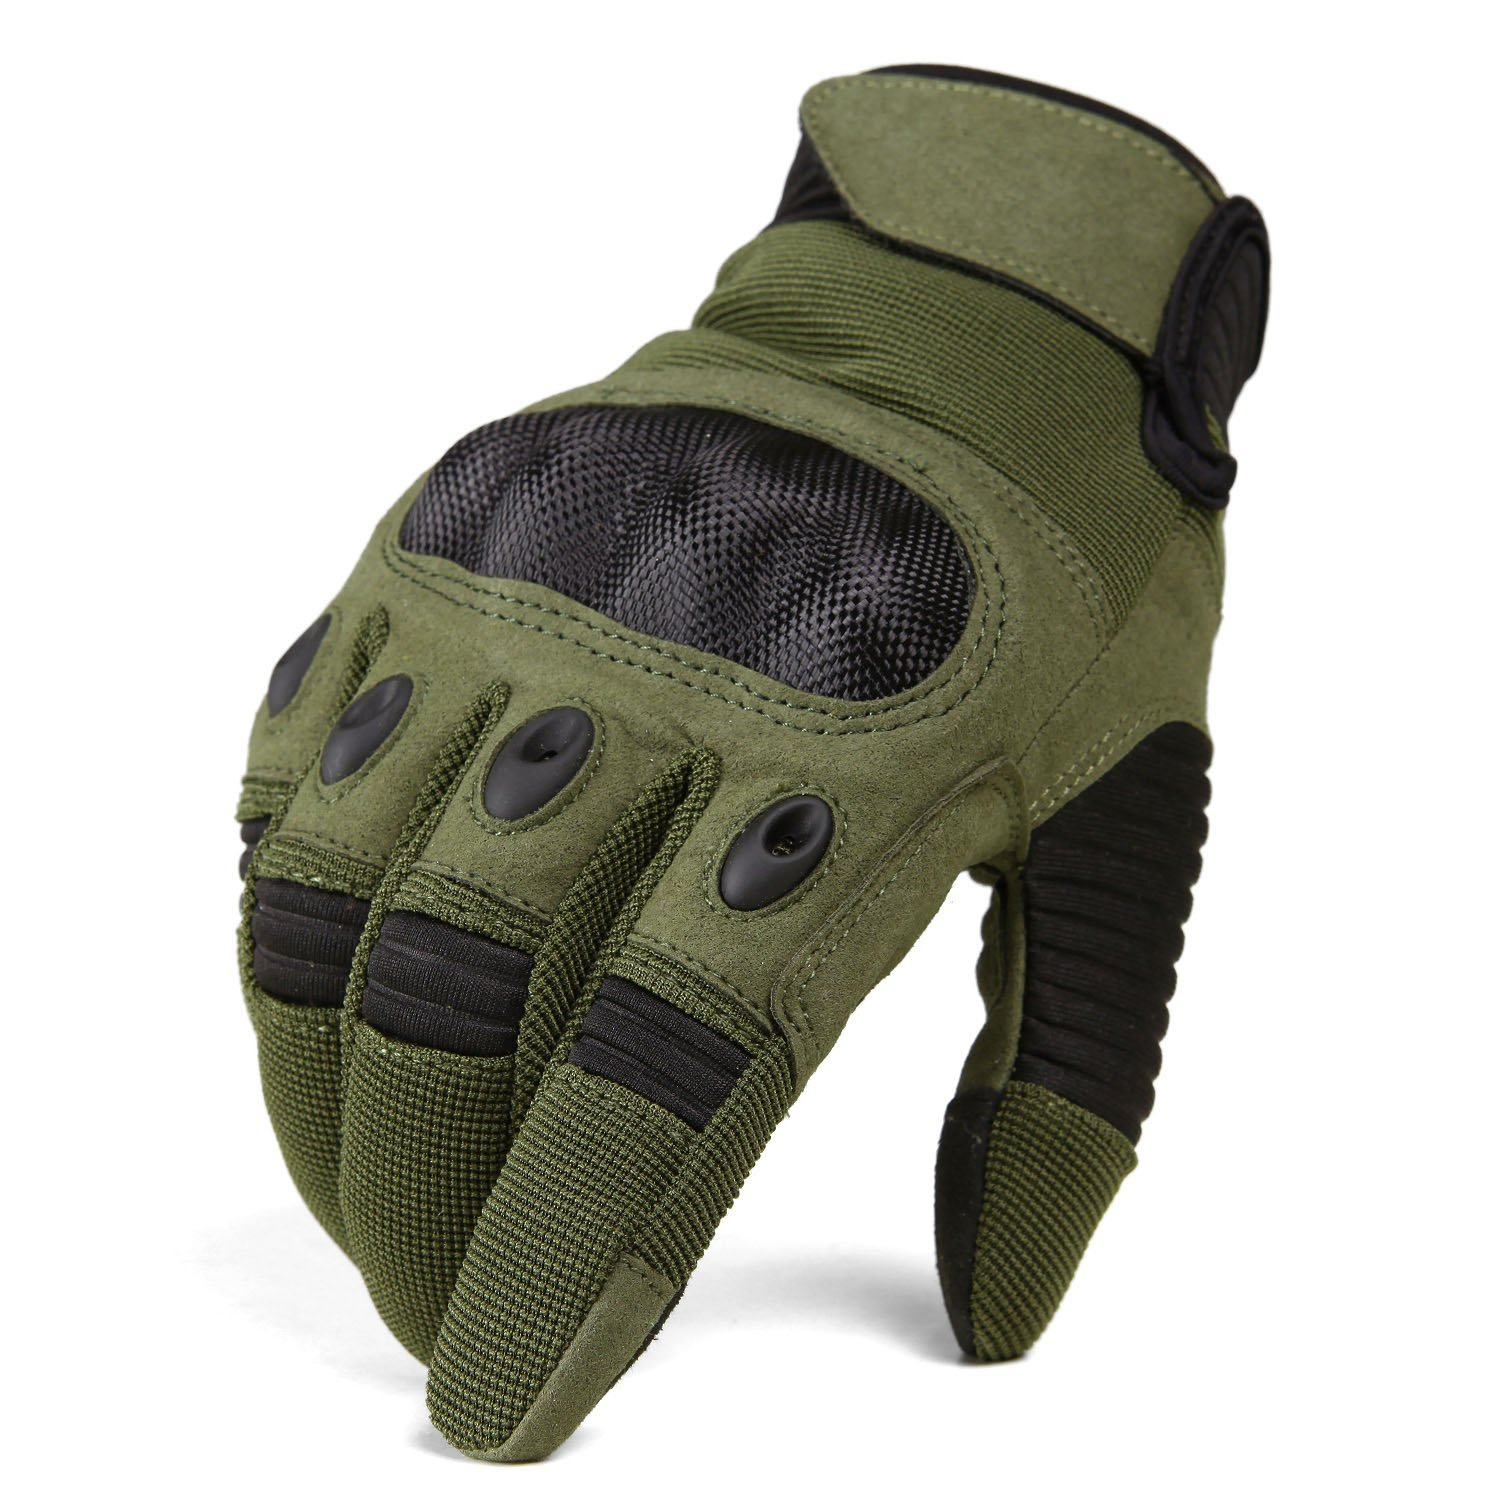 TACVASEN Men's Military Special Ops Full Finger Tactical Gloves for Motorcycle Cycling Riding Hunting Hiking Army Green